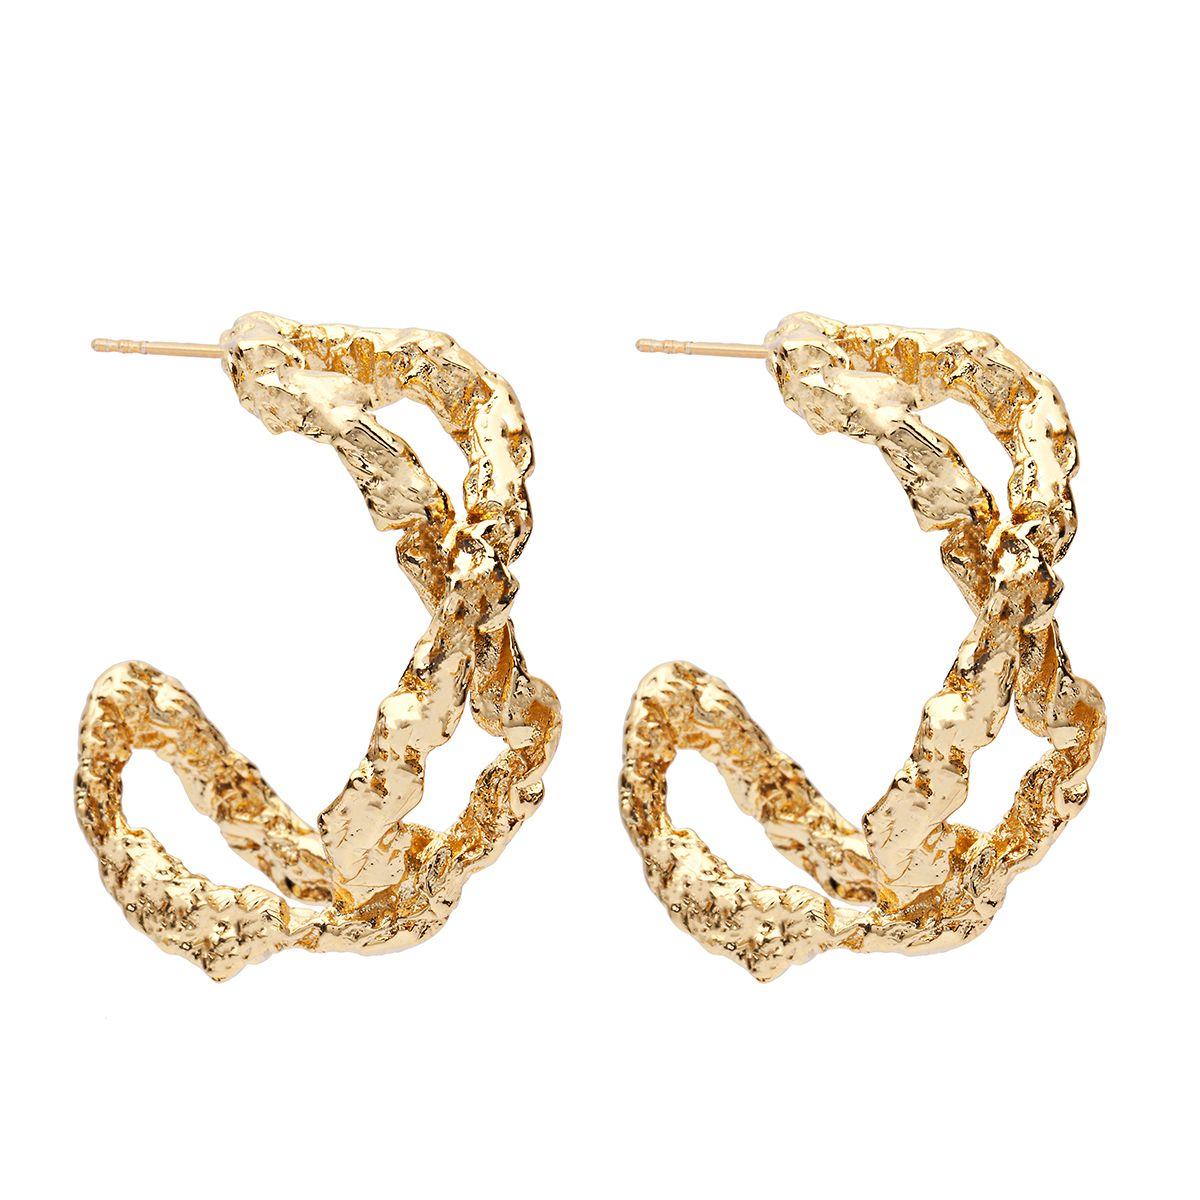 Amber Sceats Ella Earrings in Gold